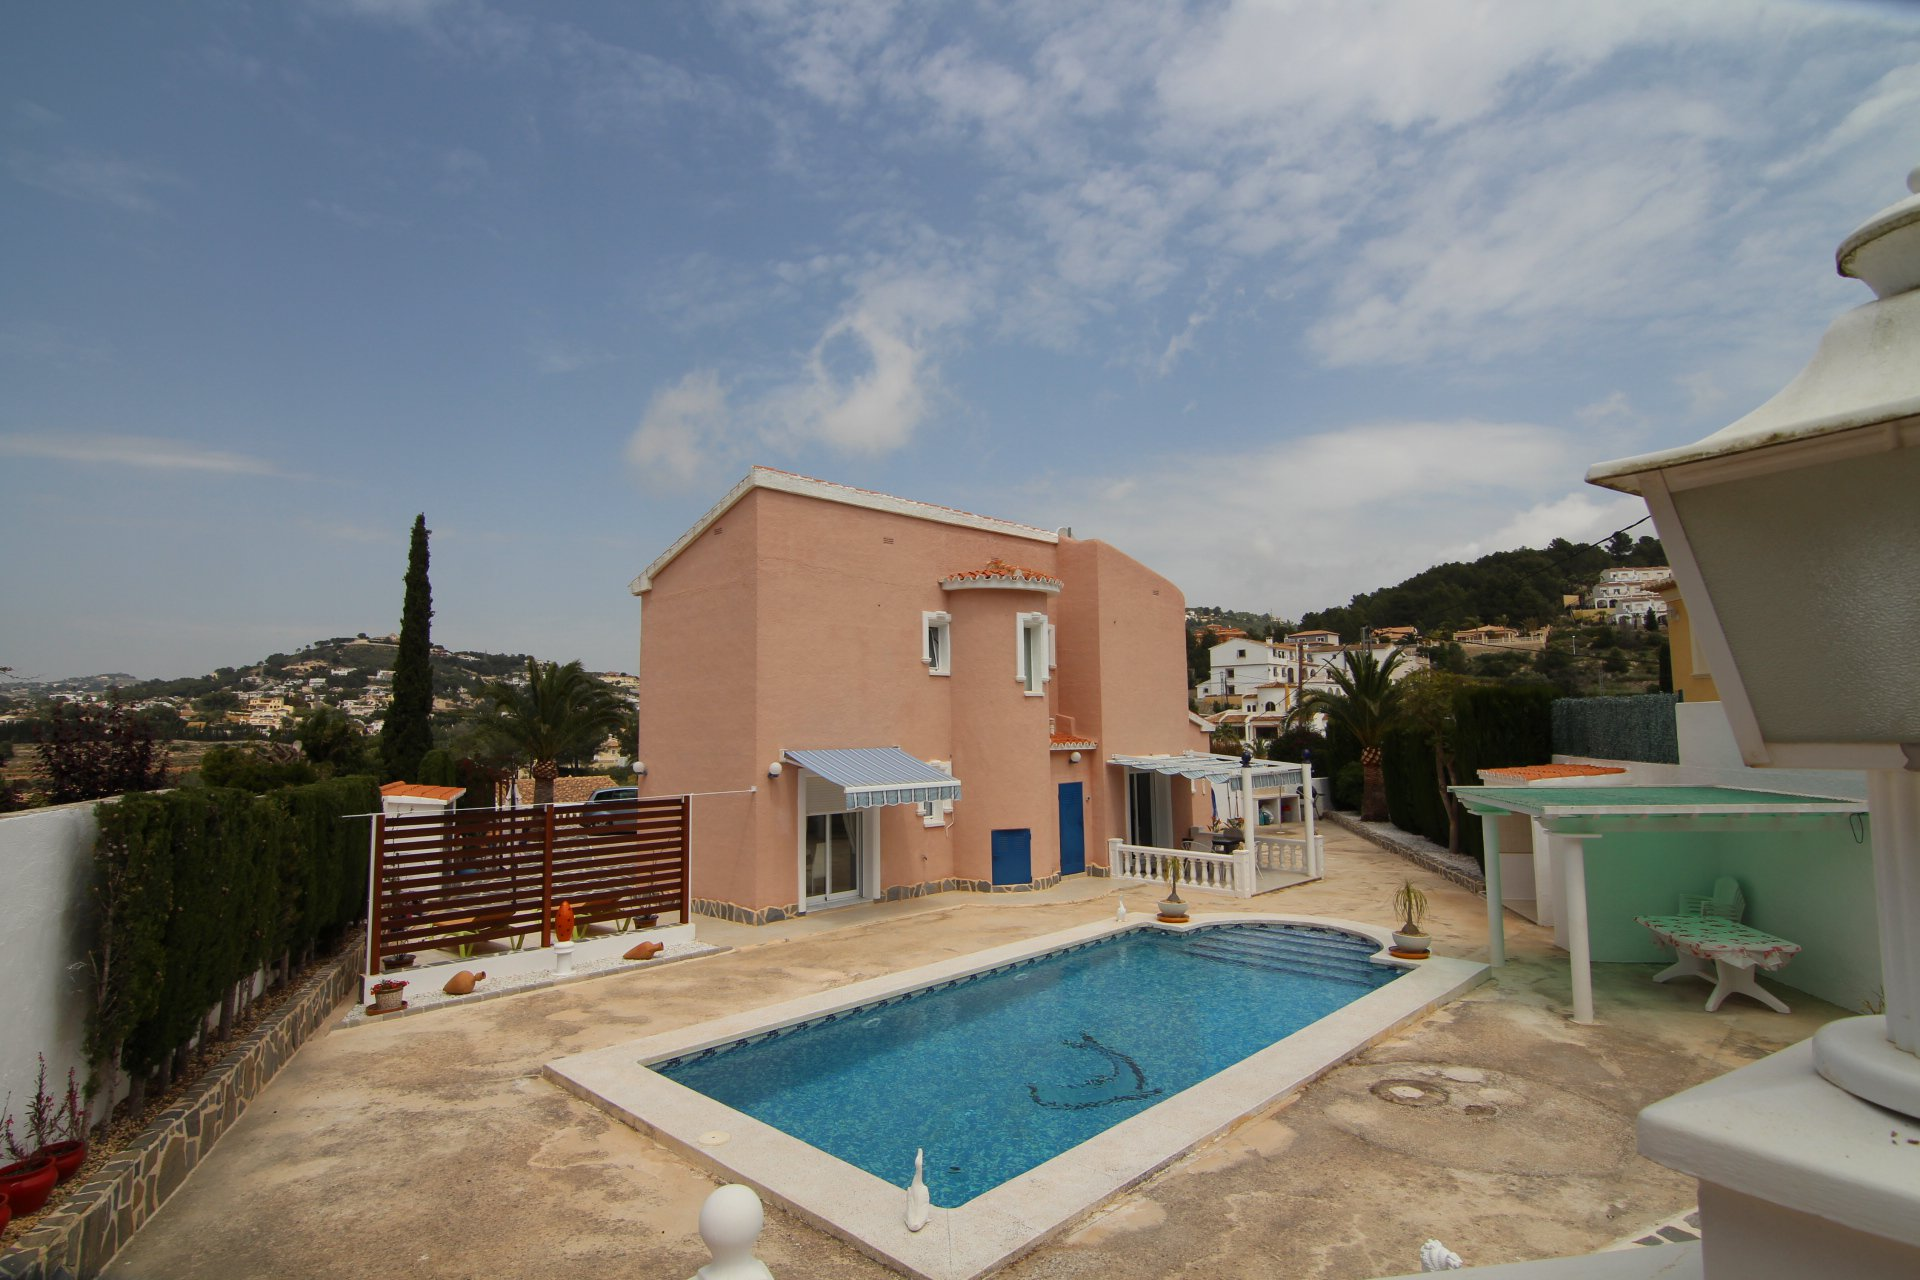 3-bedroom/3-bathroom villa in Calpe